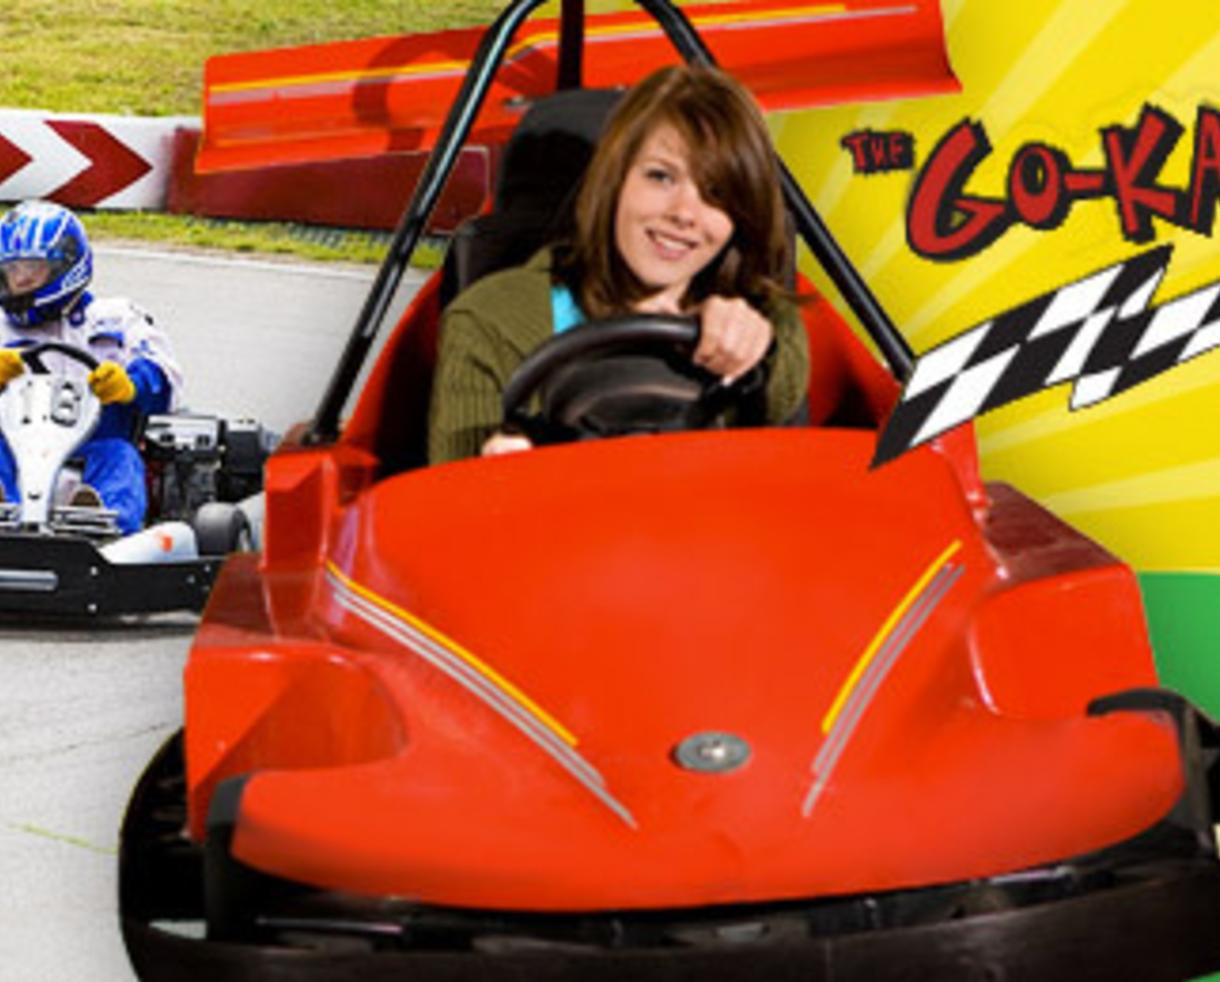 $25 for 4 Go-Kart Rides & 2 Rounds of Mini Golf - Fun For Ages 3 and Up! ($46 Value - 46% Off)